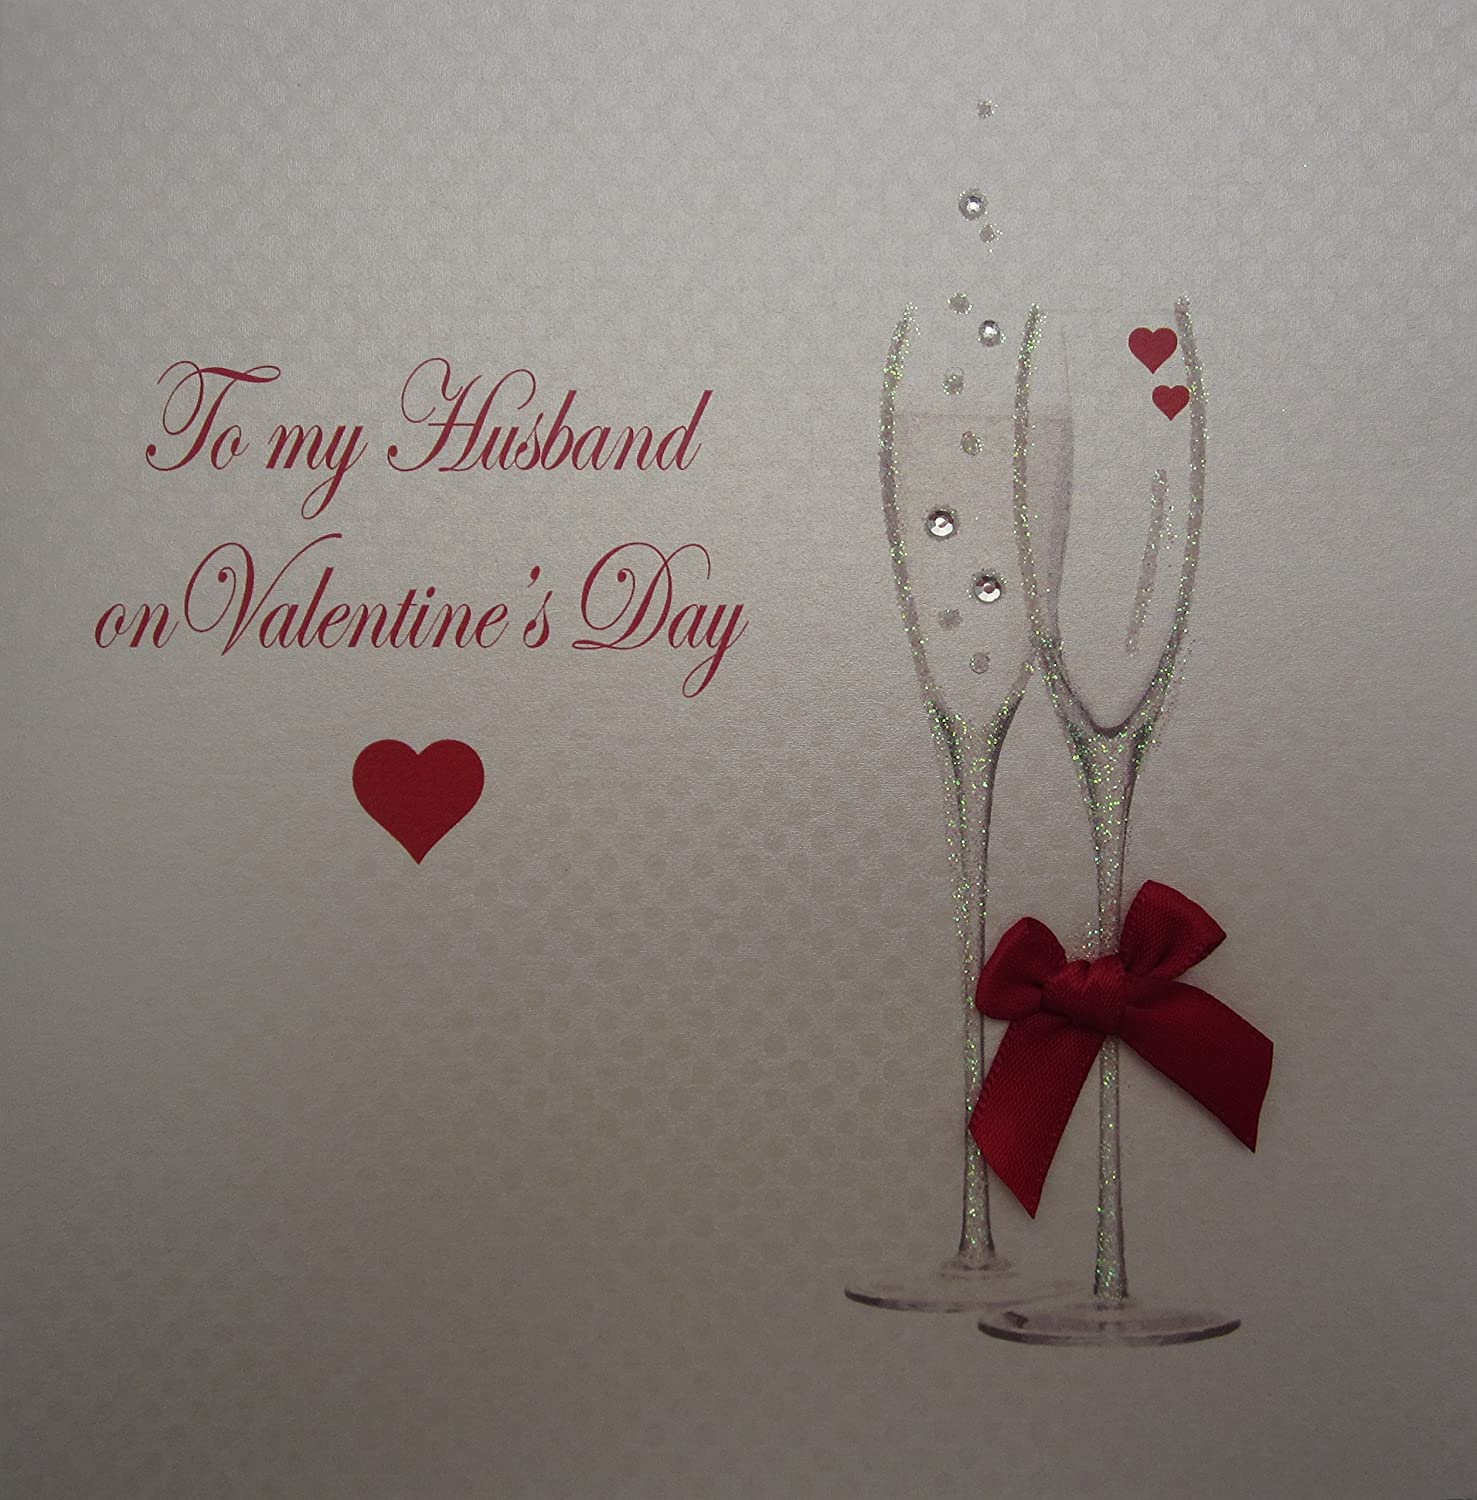 White cotton cards champagne flutes to my husband on valentines day white cotton cards champagne flutes to my husband on valentines day handmade valentines day card white amazon kitchen home m4hsunfo